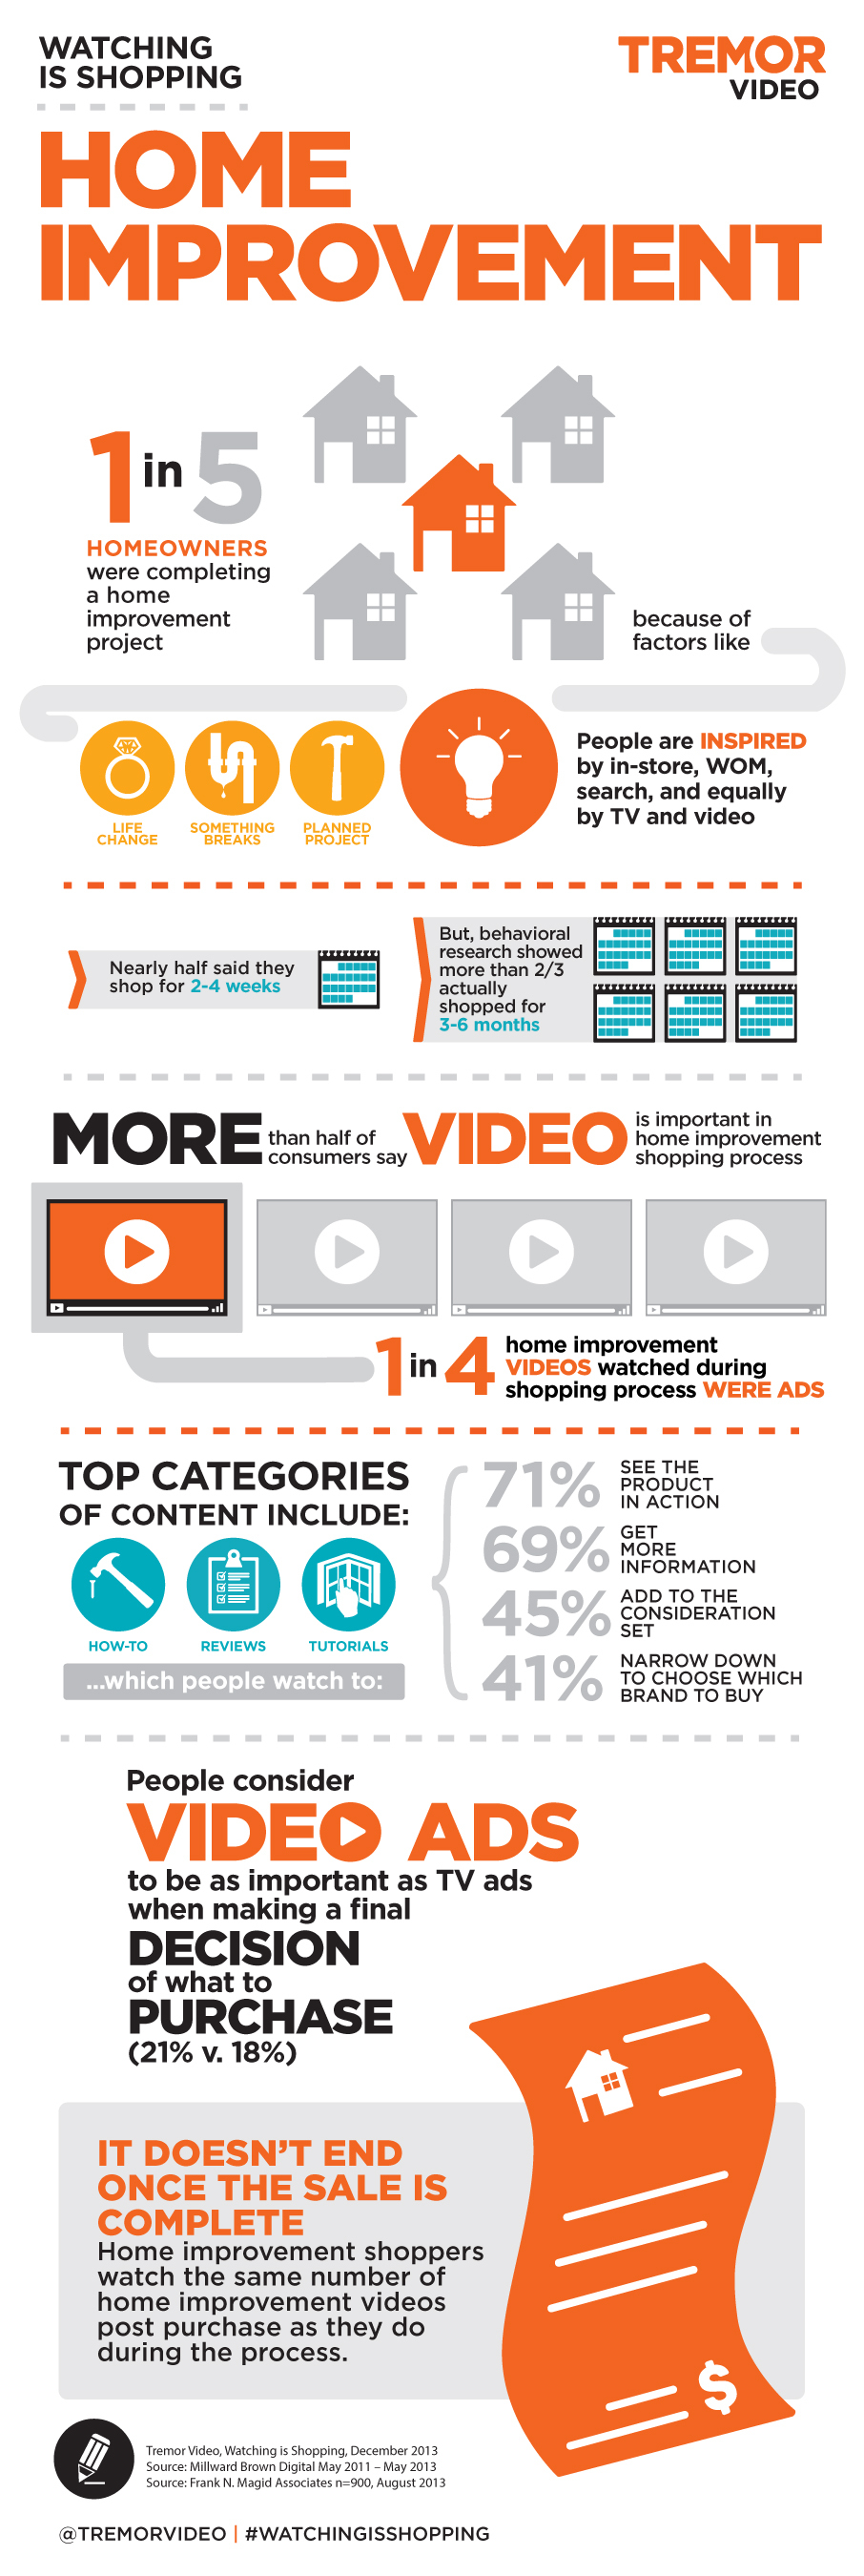 """Tremor Video Releases """"Watching is Shopping: Home Improvement"""" Infographic (Graphic: Business Wire)"""